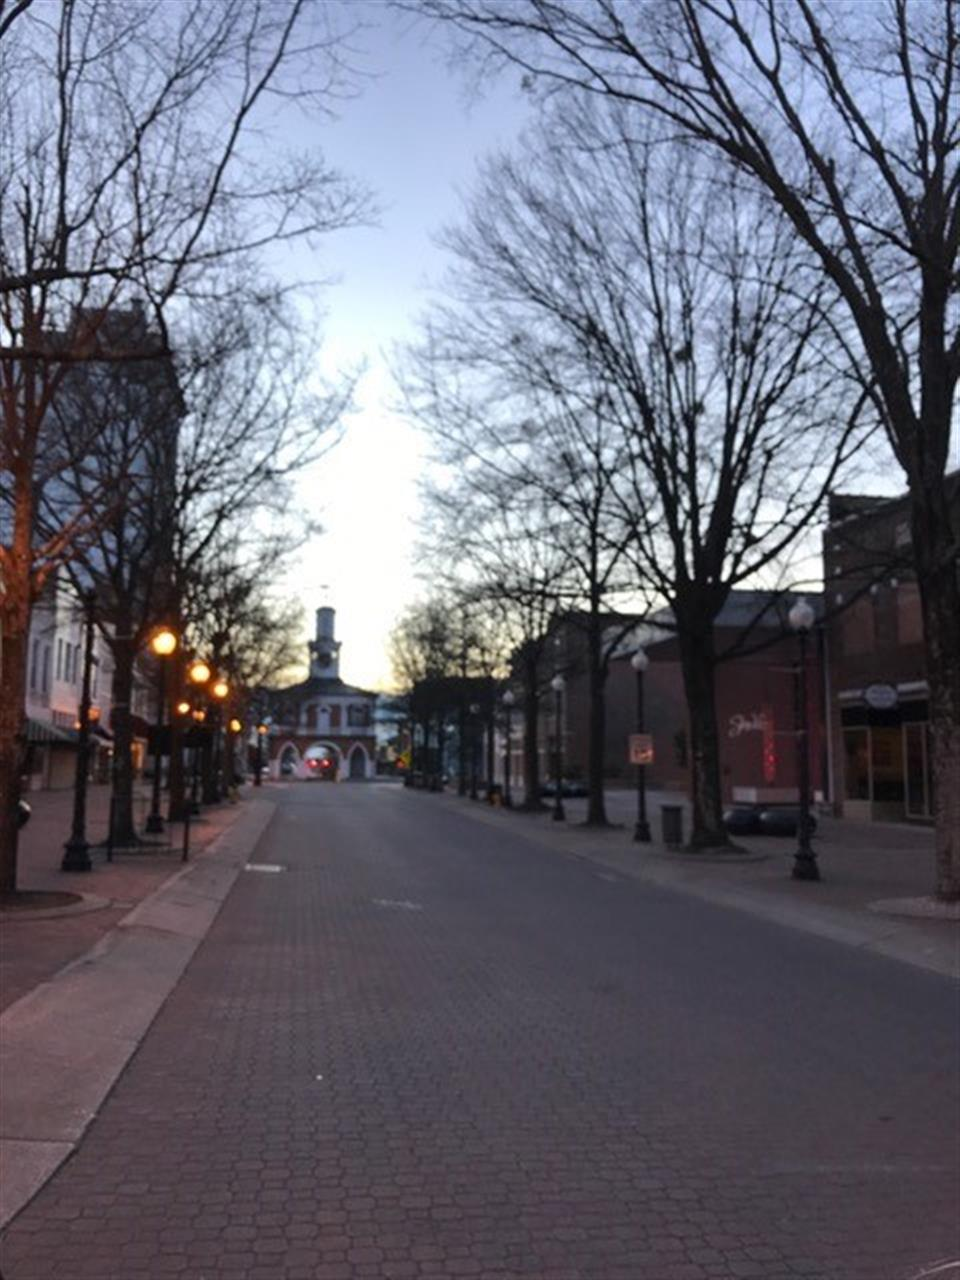 Market House at sunrise, January 29, 2017.  Submitted by Townsend Real Estate.